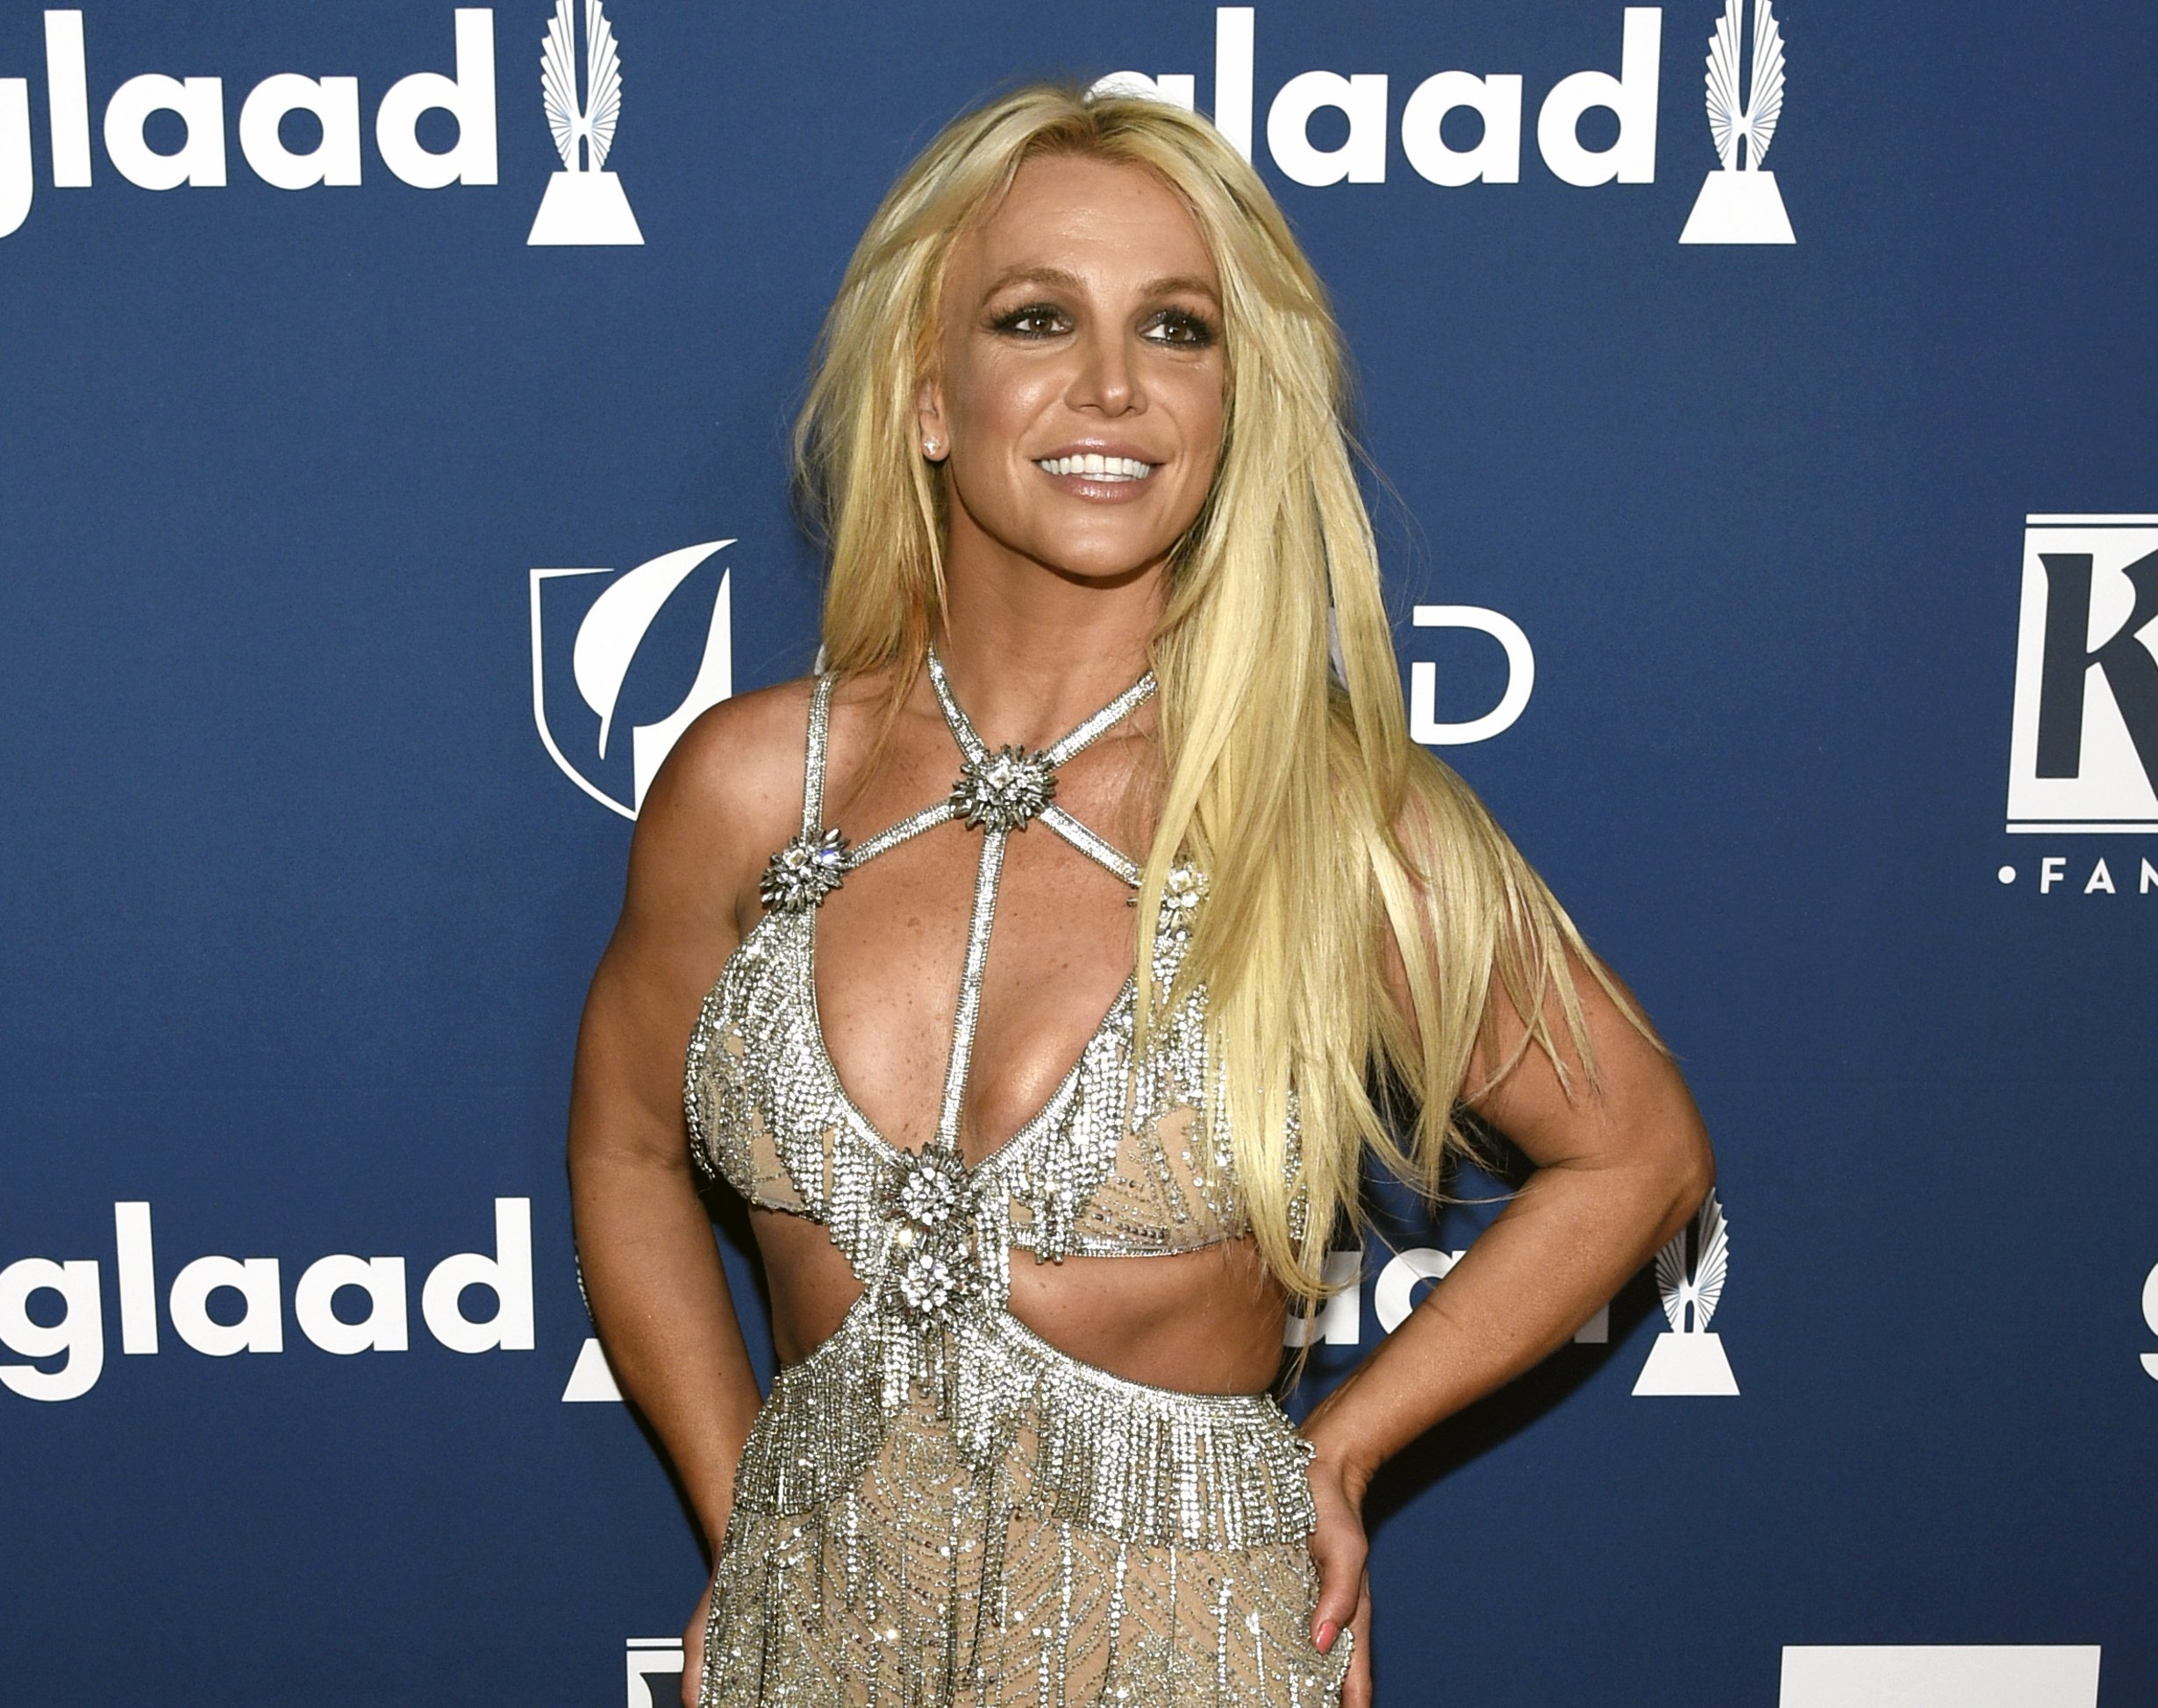 Britney Spears granted temporary restraining order against former manager Sam Lutfi